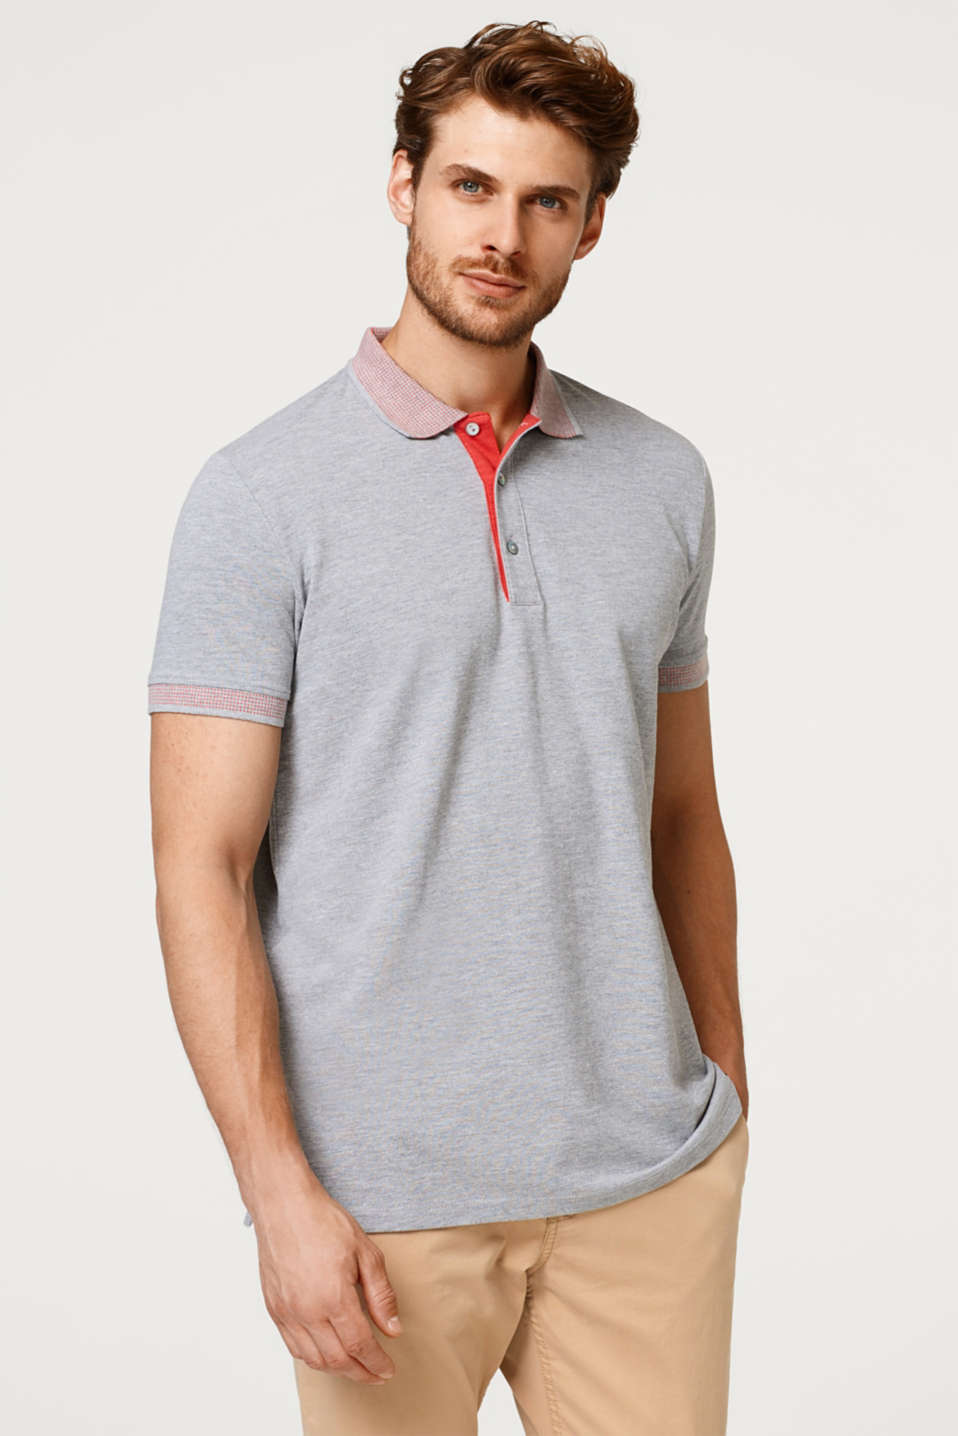 Esprit - Straight piqué polo shirt with an accentuated collar